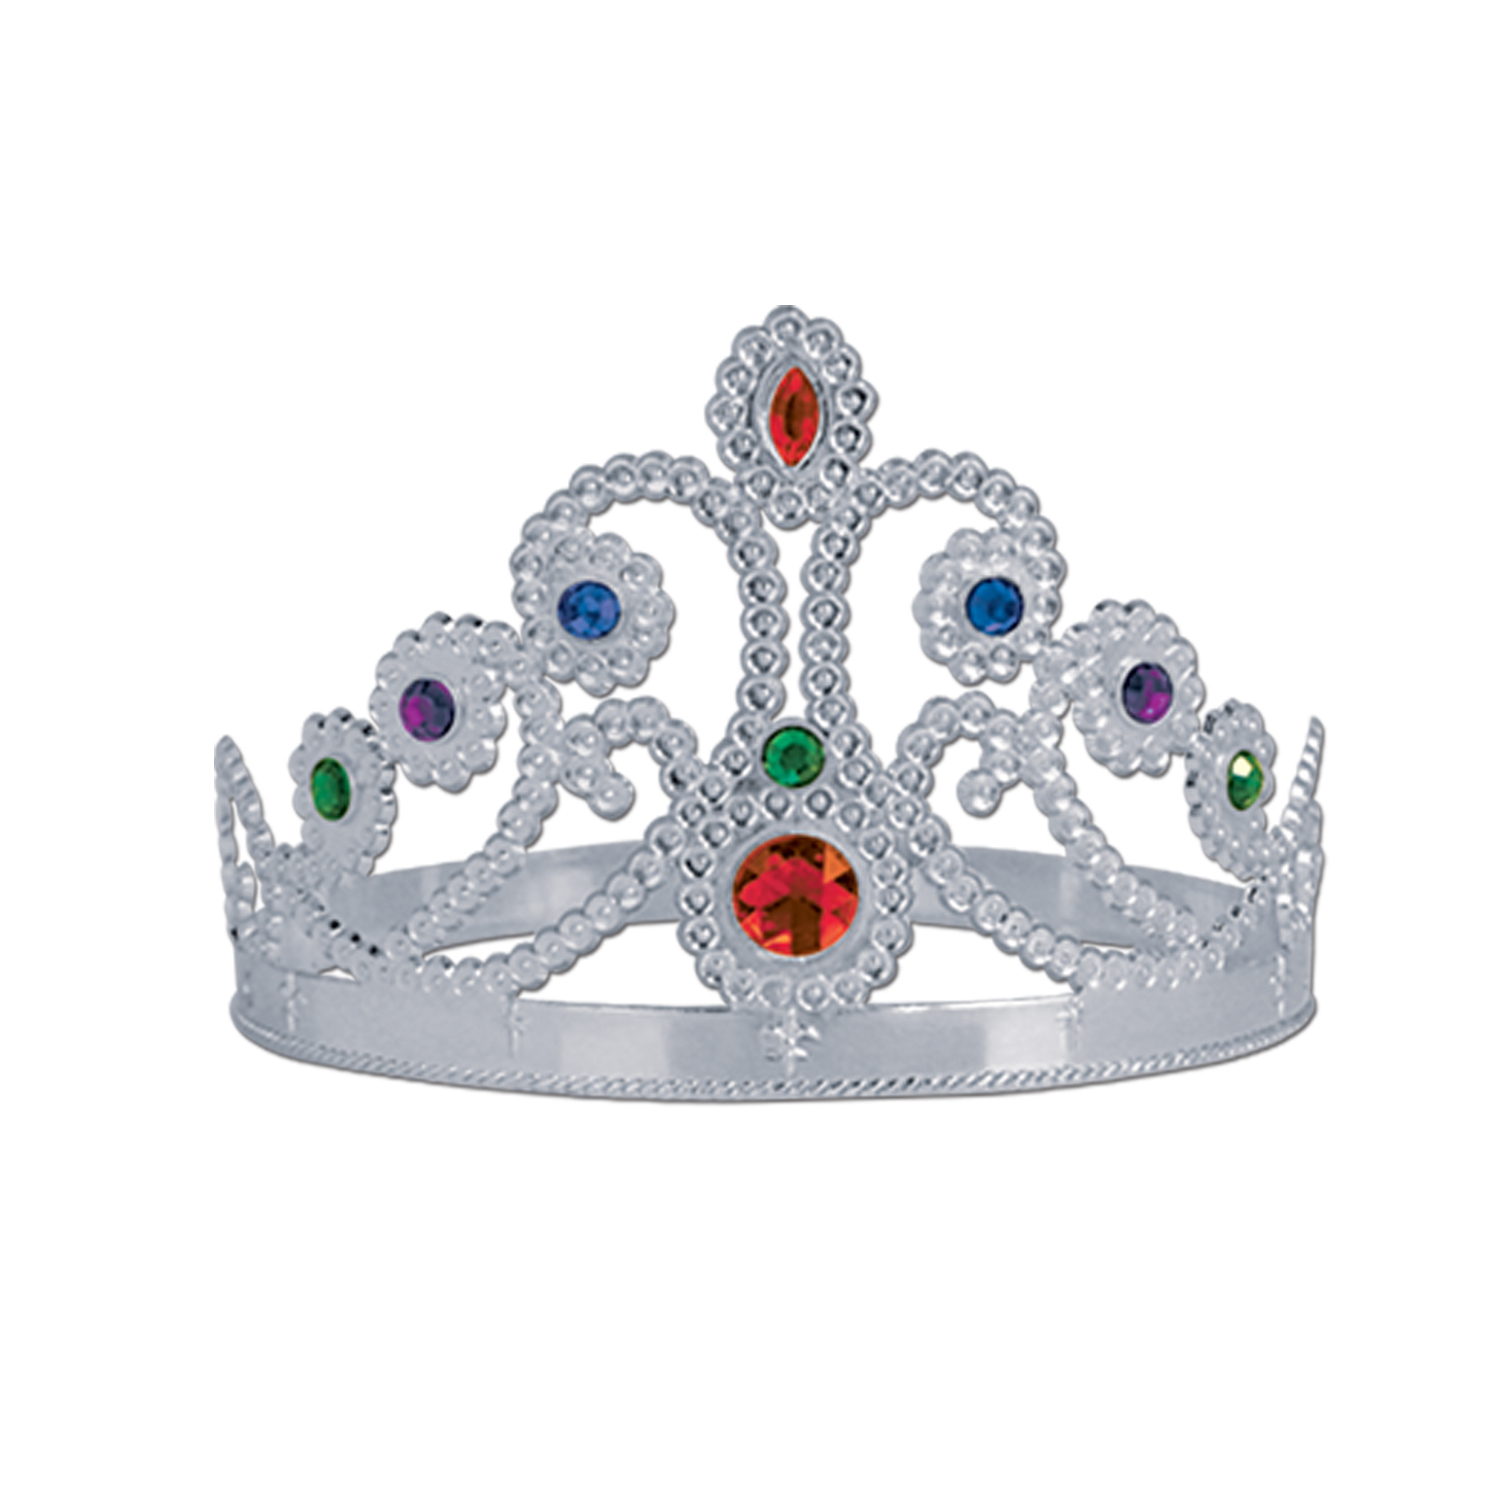 Plastic Jeweled Queens Tiara (Pack of 12) .